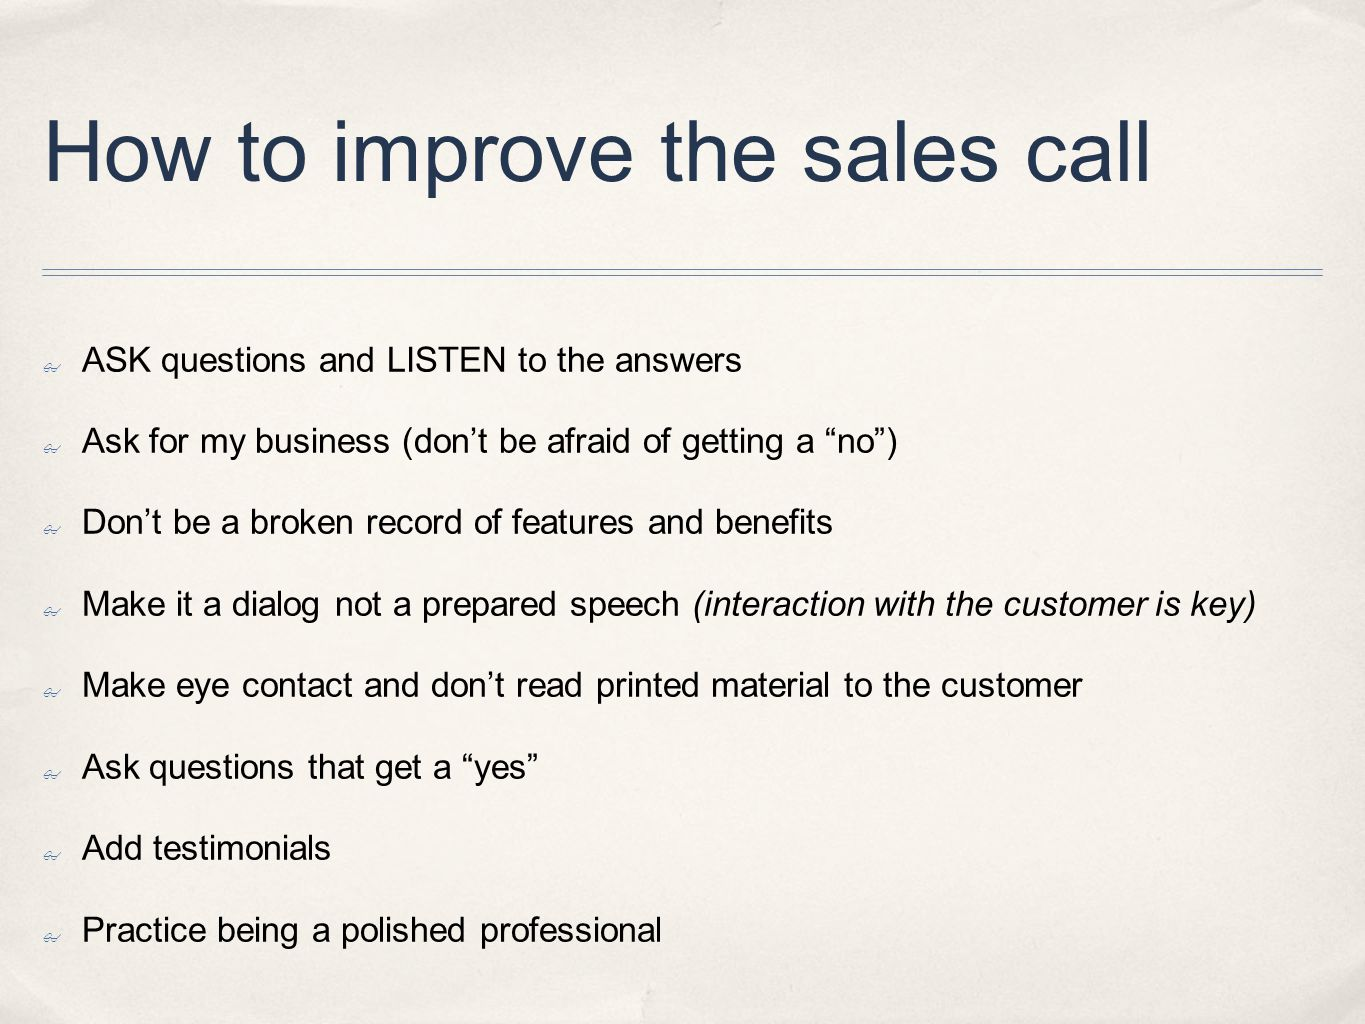 How to improve the sales call